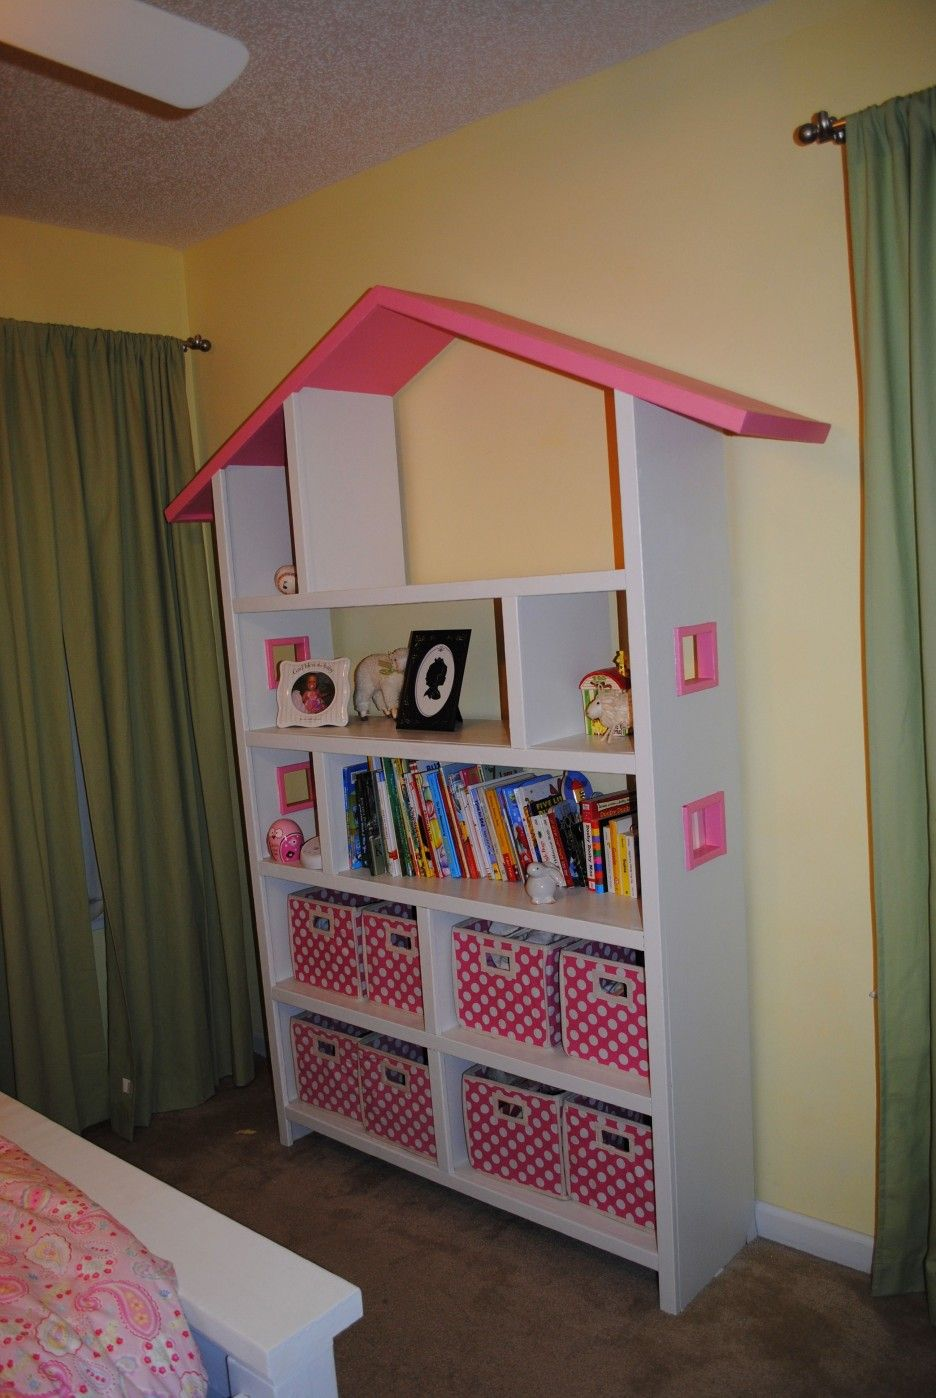 Charming Bookshelf Plans In White And PInk Color On